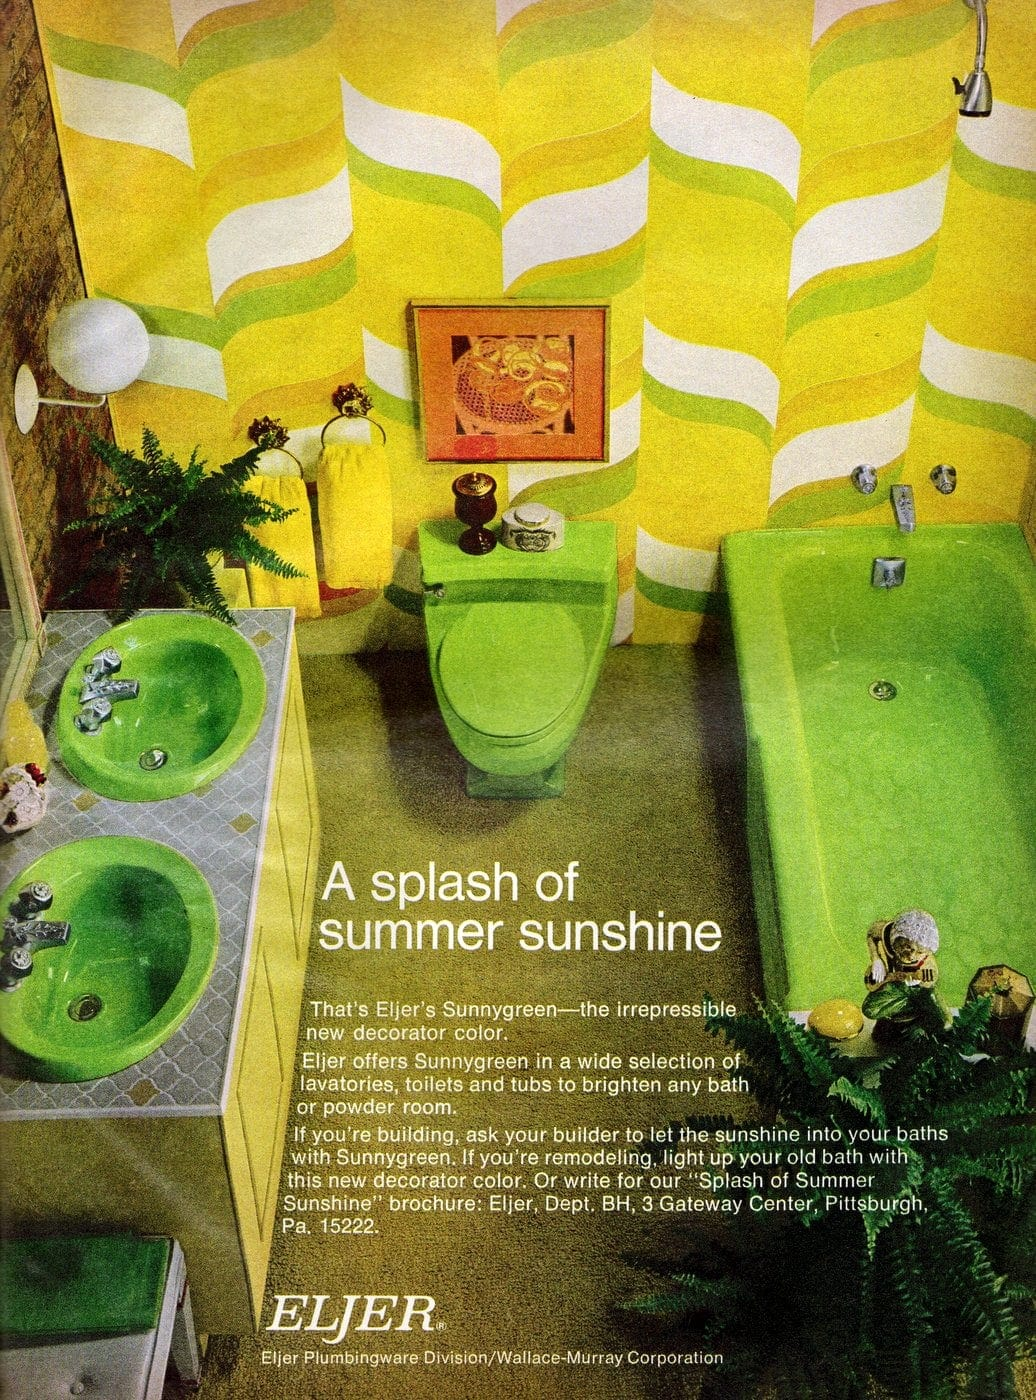 Retro lime green bathroom suite with groovy wallpaper (1970s)